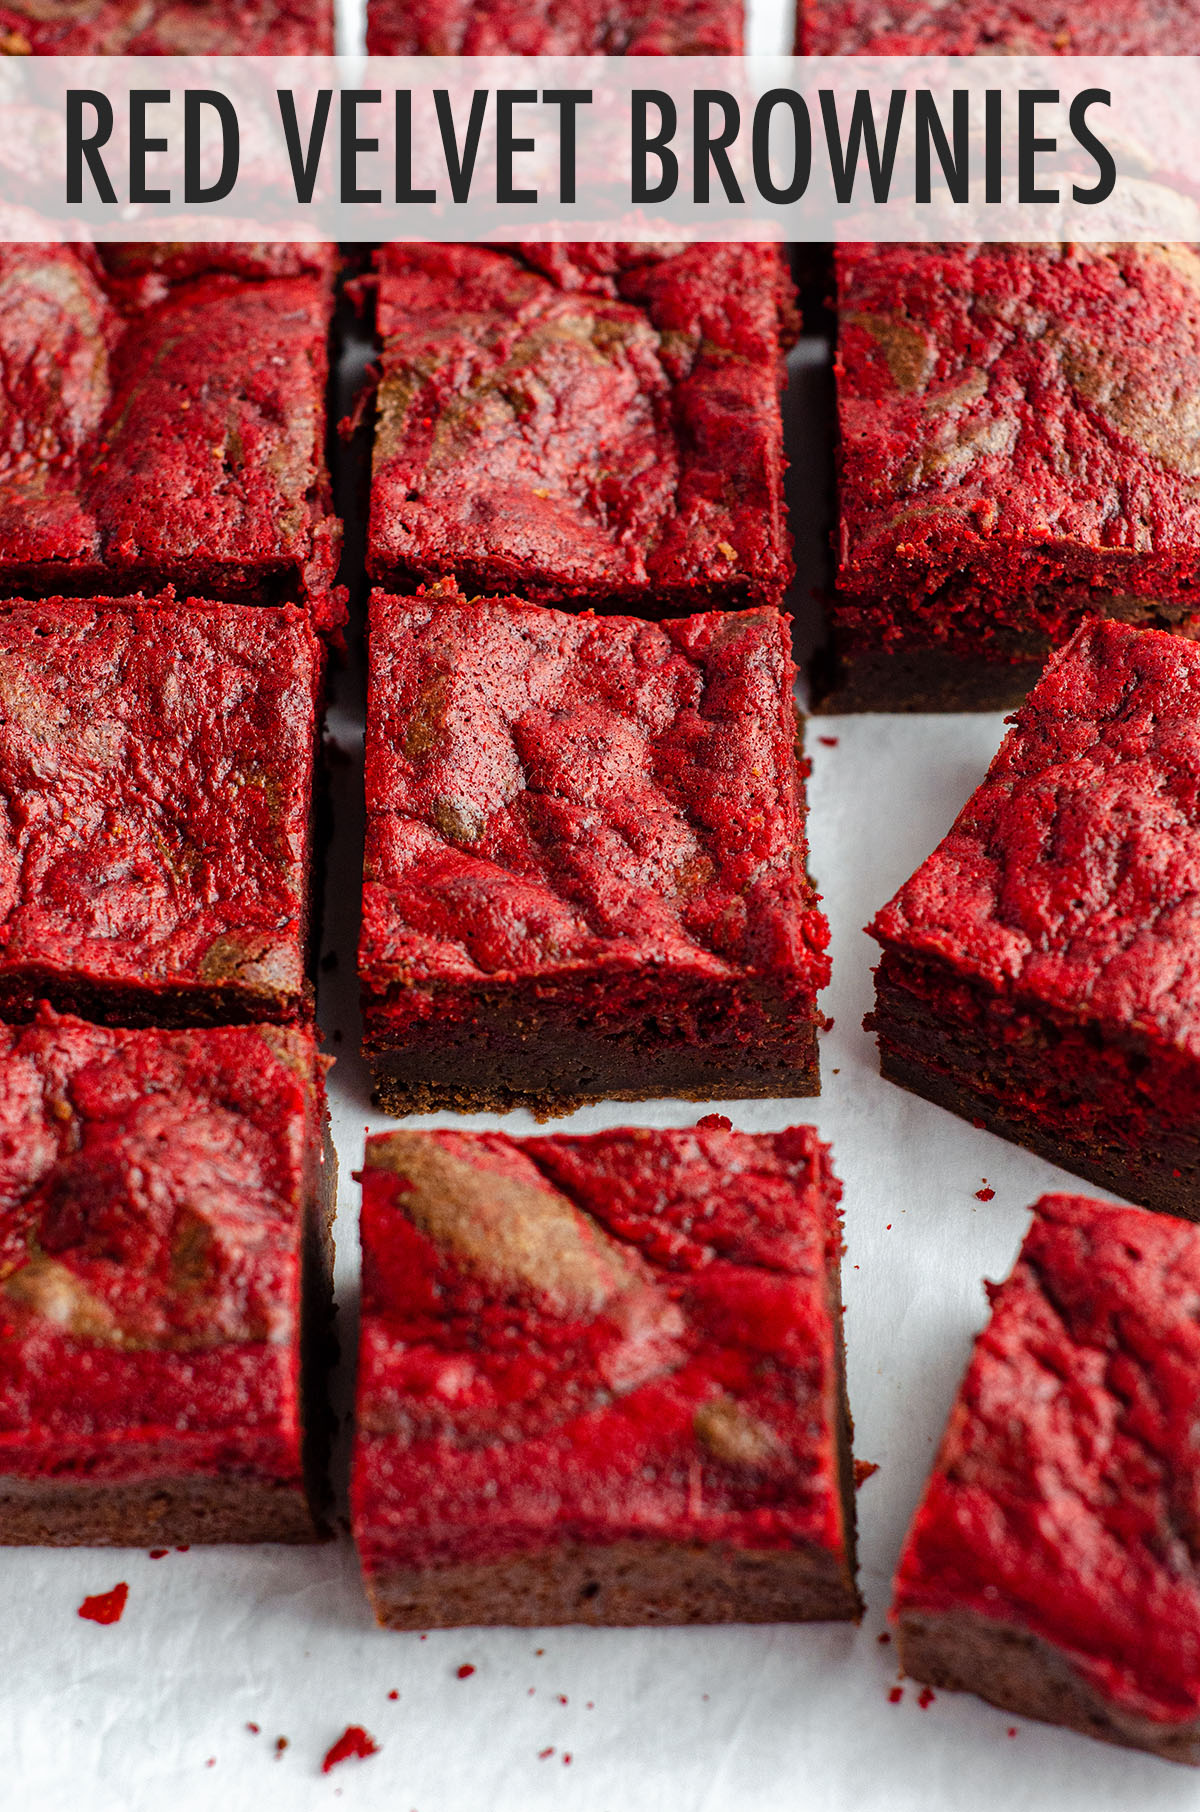 Dense and fudgy brownies swirled with red velvet cake-- everything is made from scratch!